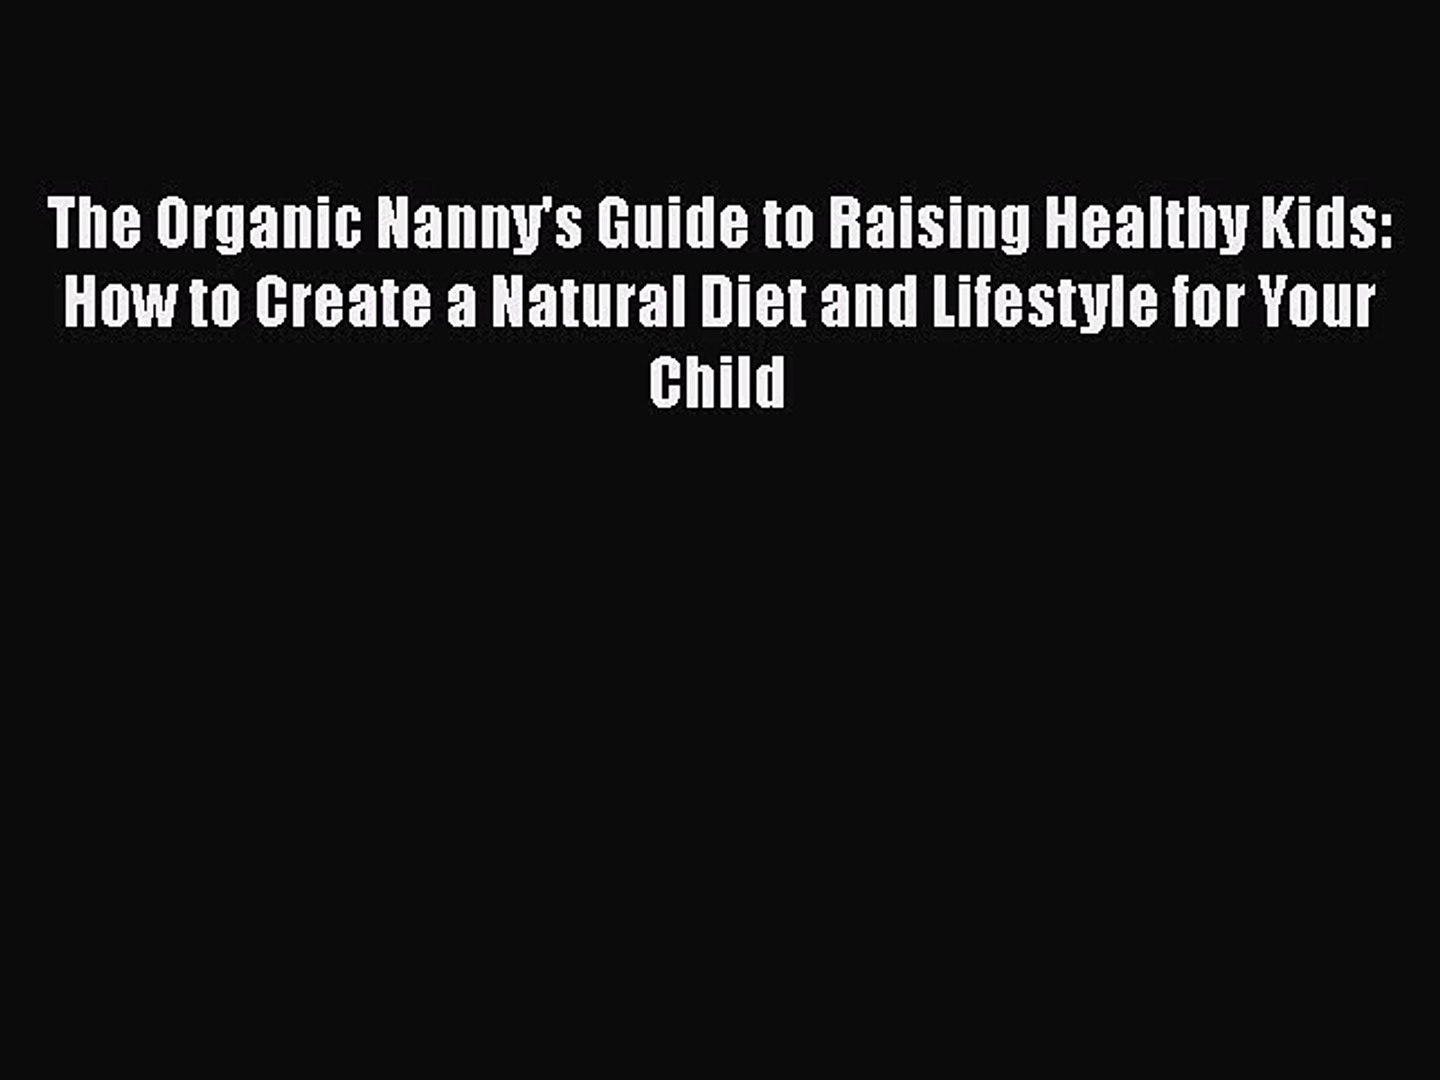 Download Books The Organic Nanny's Guide to Raising Healthy Kids: How to Create a Natural Diet